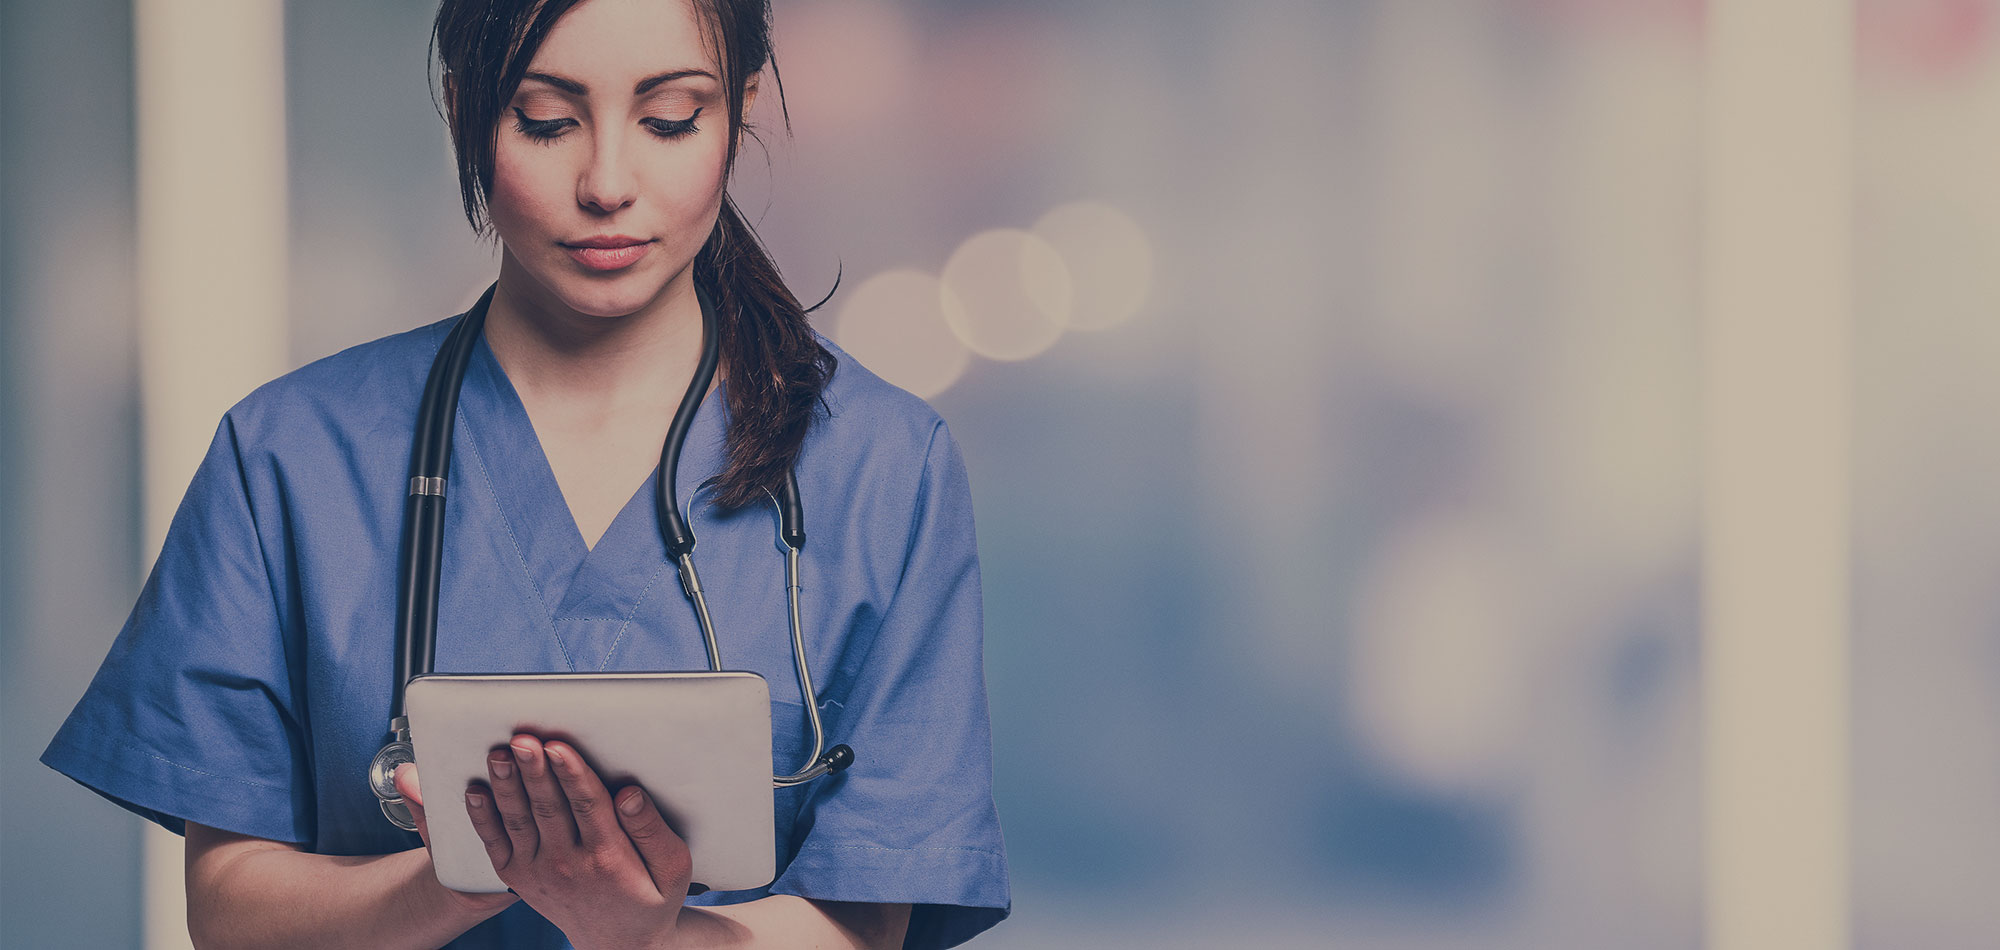 Specialized Test Hospitals Can Use to Improve Their Wi-Fi Performance